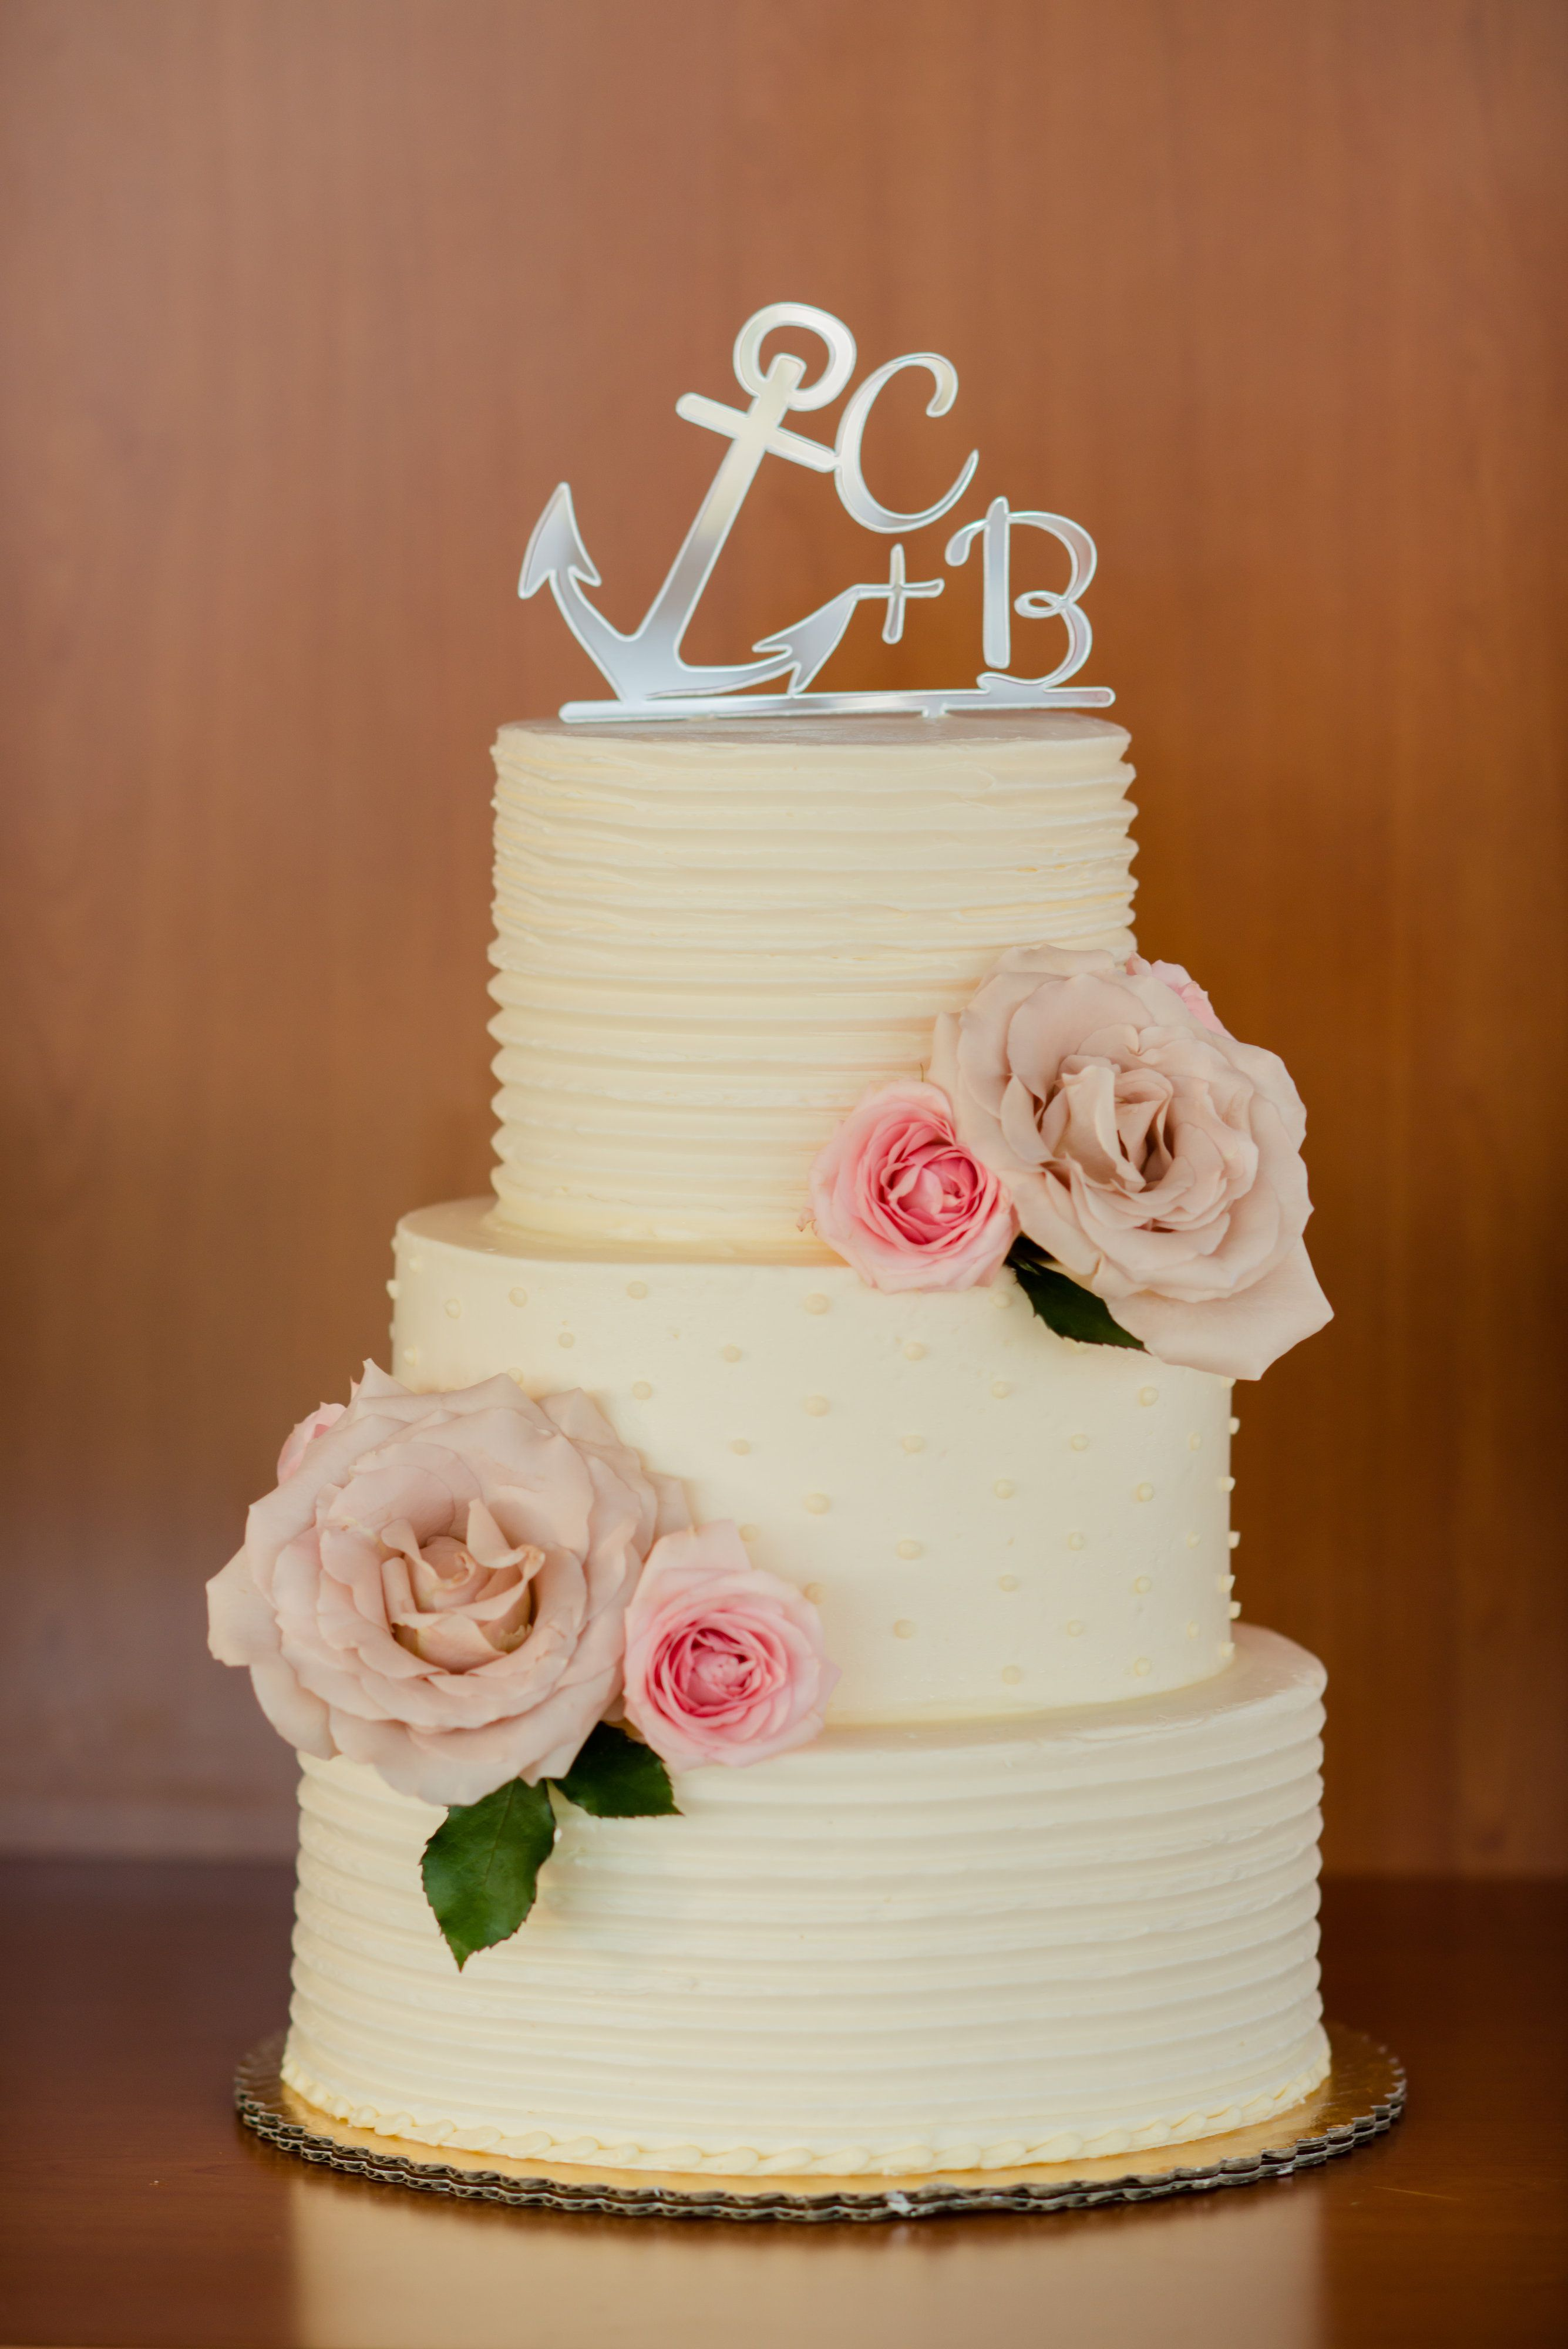 An Anchor Wedding Cake Topper We Love A Yacht Photo Melissa Elaine Photography Cake Anchor Wedding Cake Topper Anchor Wedding Cake Wedding Cake Toppers